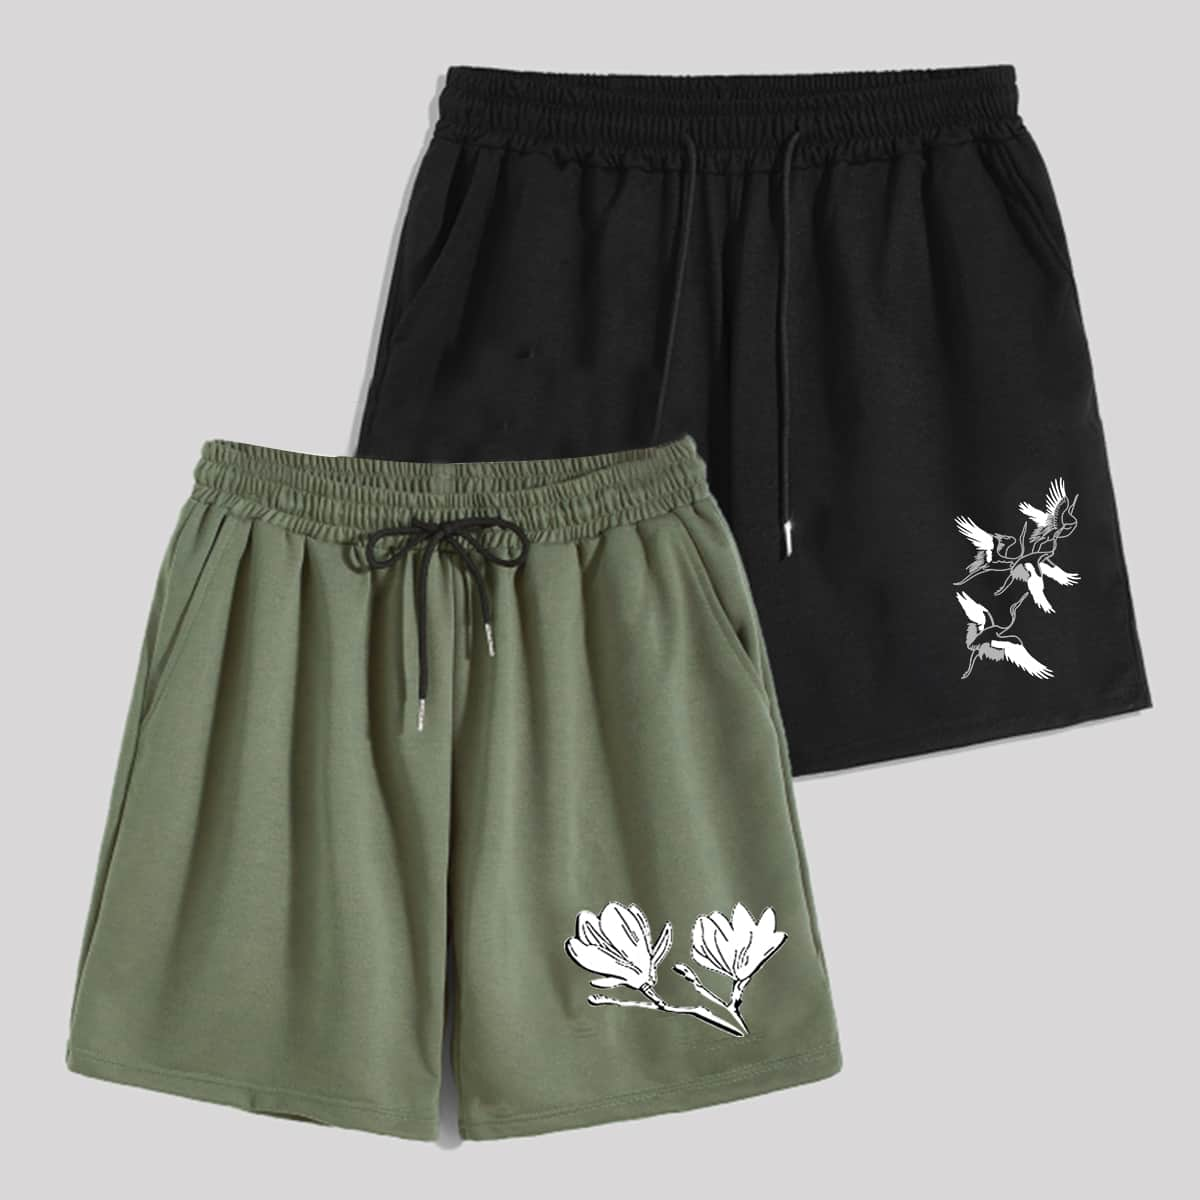 Guys 1pc Floral Graphic Drawstring Shorts & 1pc Crane Graphic Drawstring Shorts